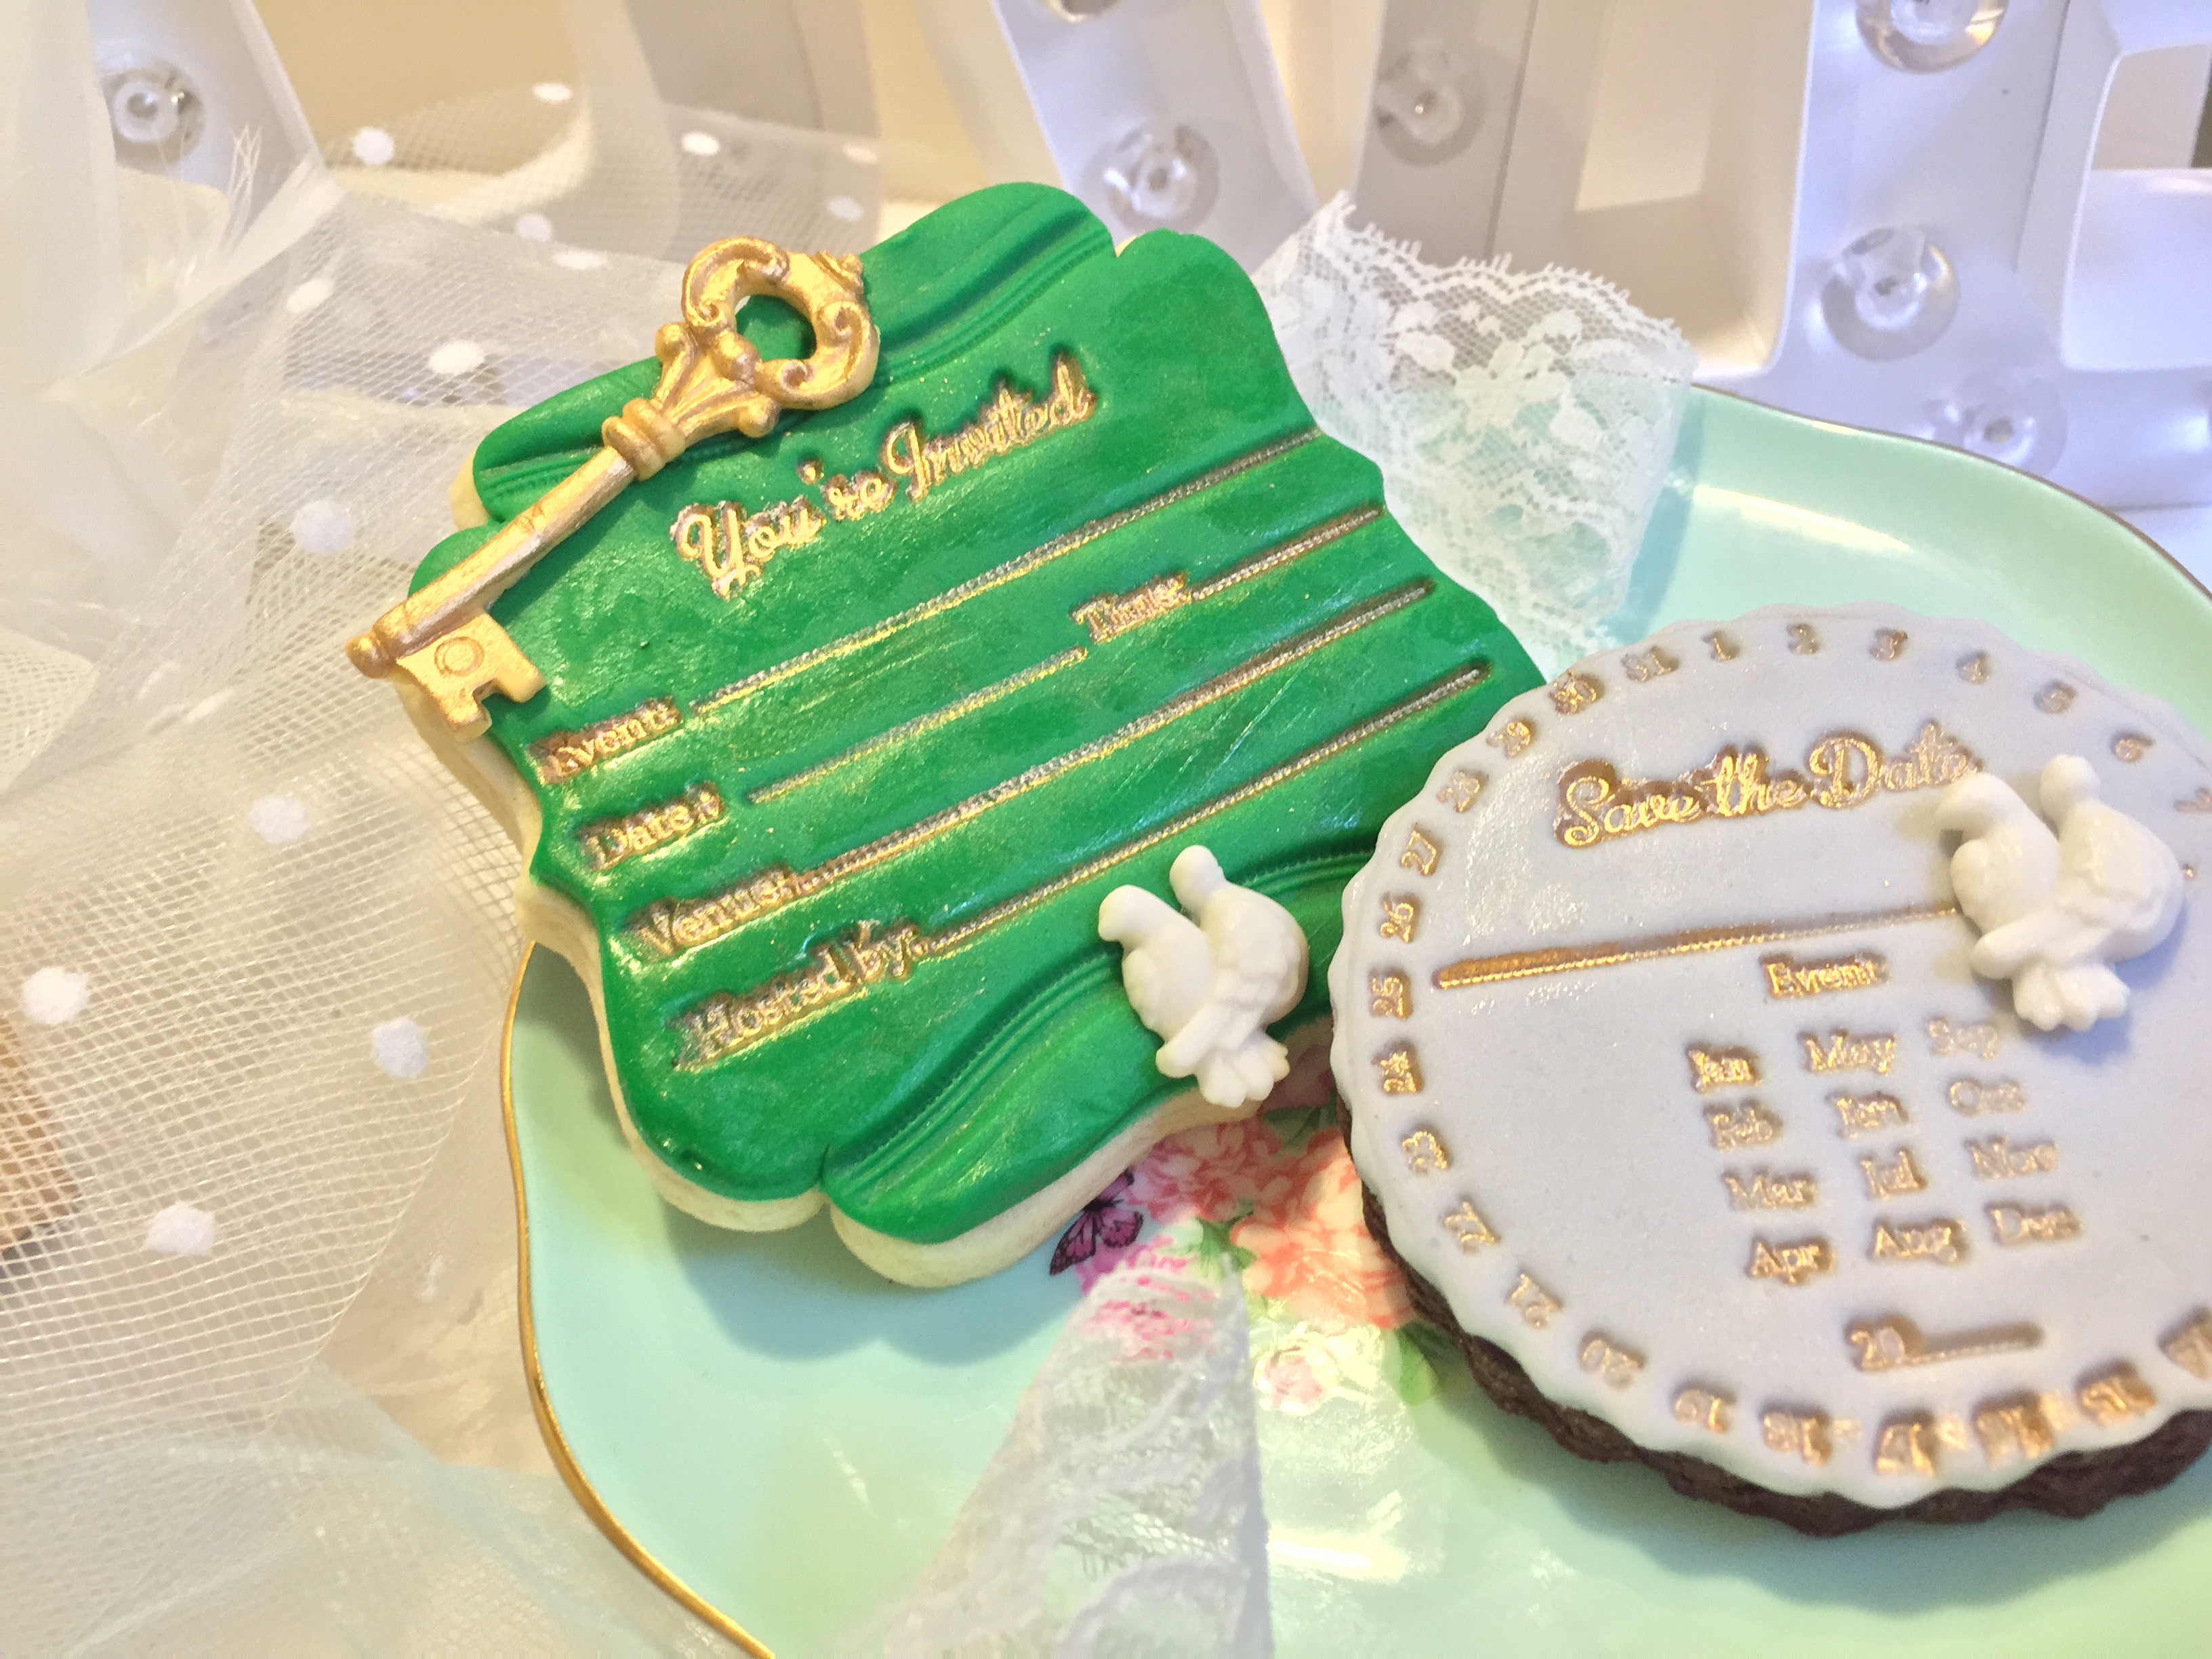 Edible invitations